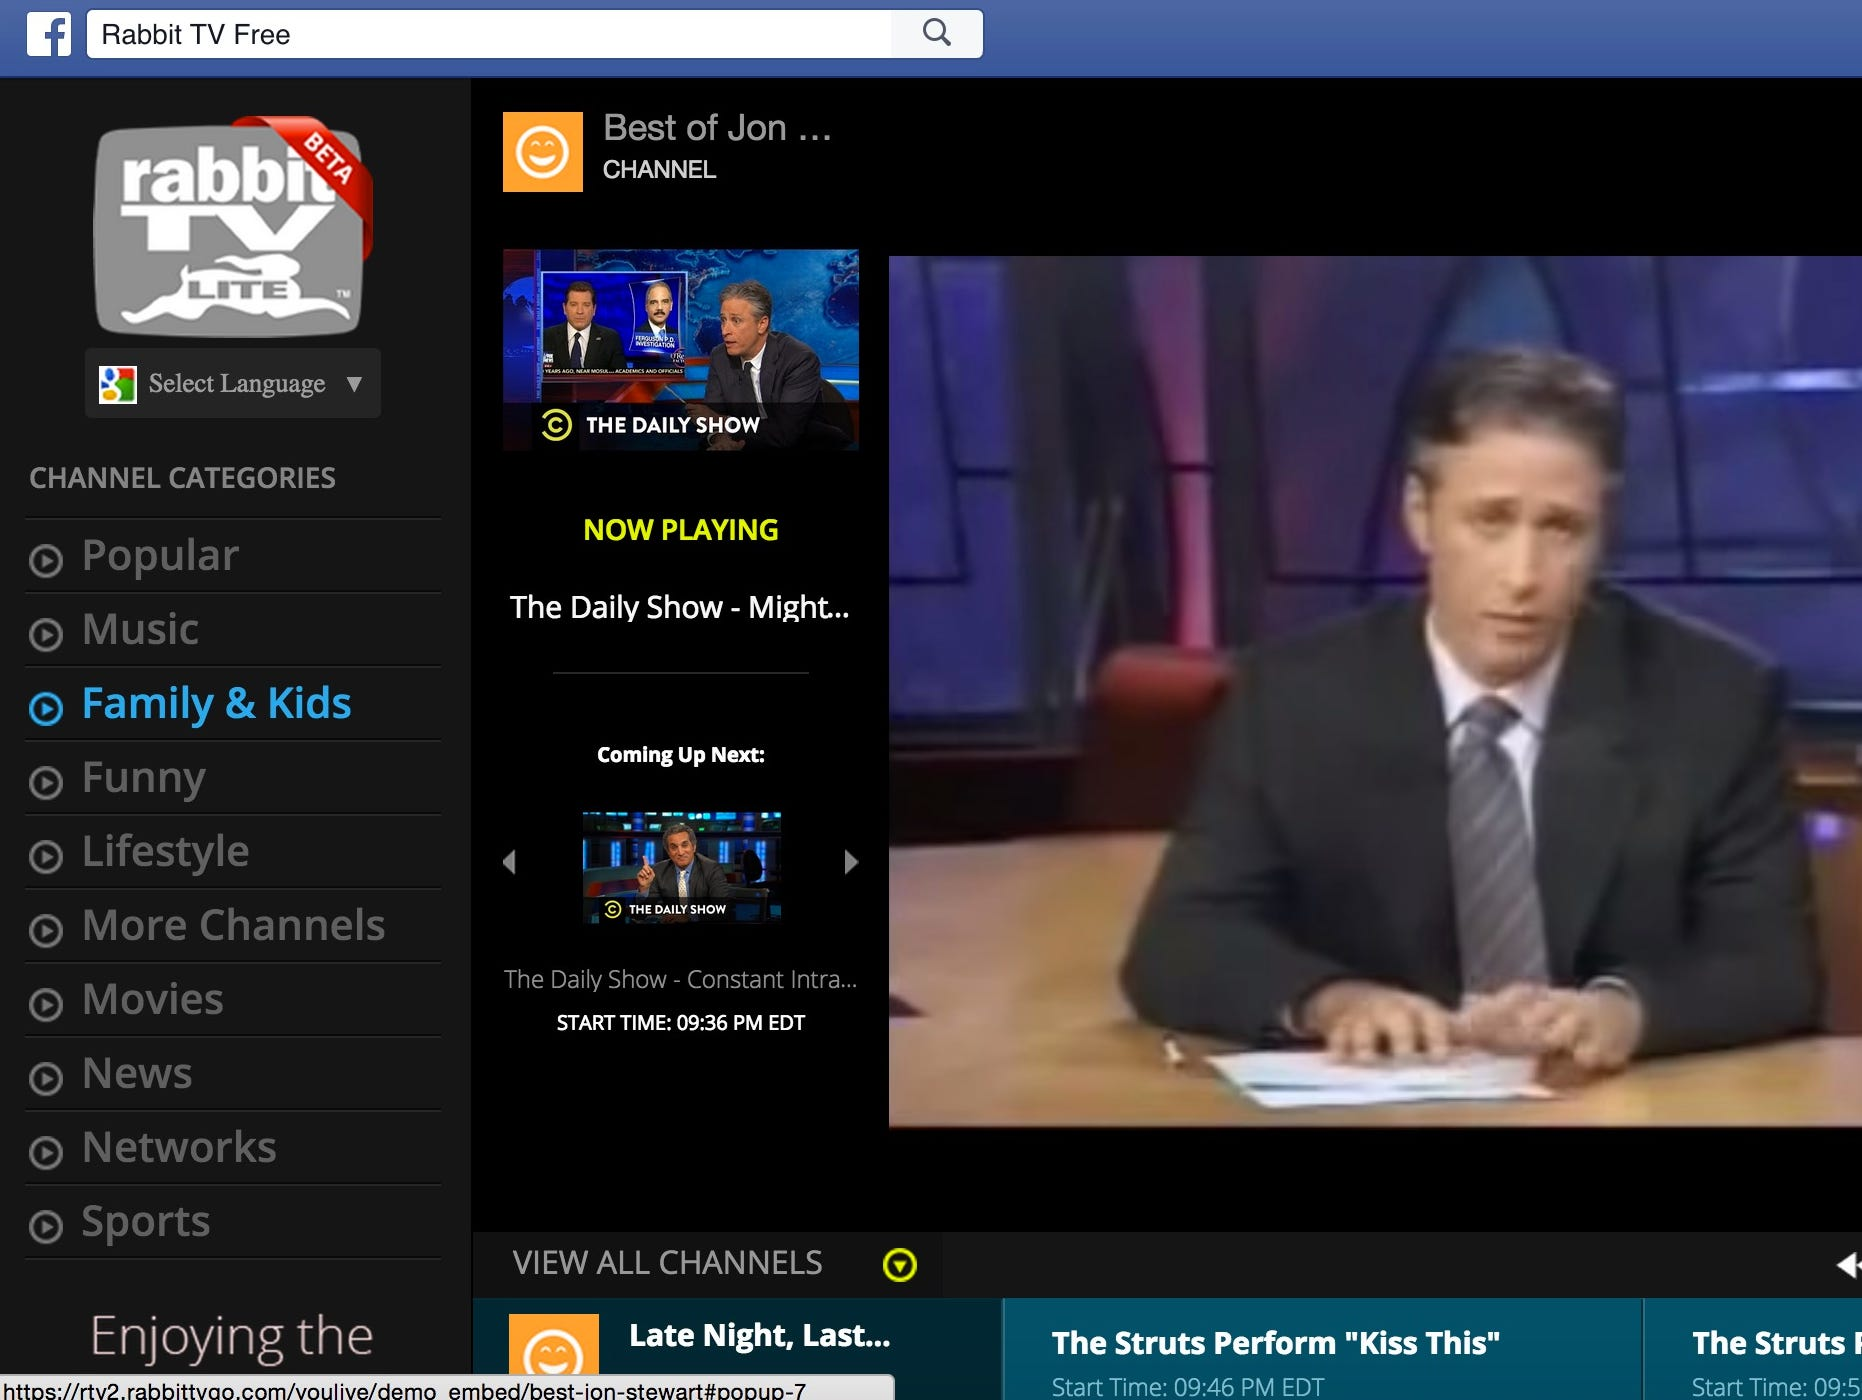 A screen shot of Rabbit TV app on Facebook.